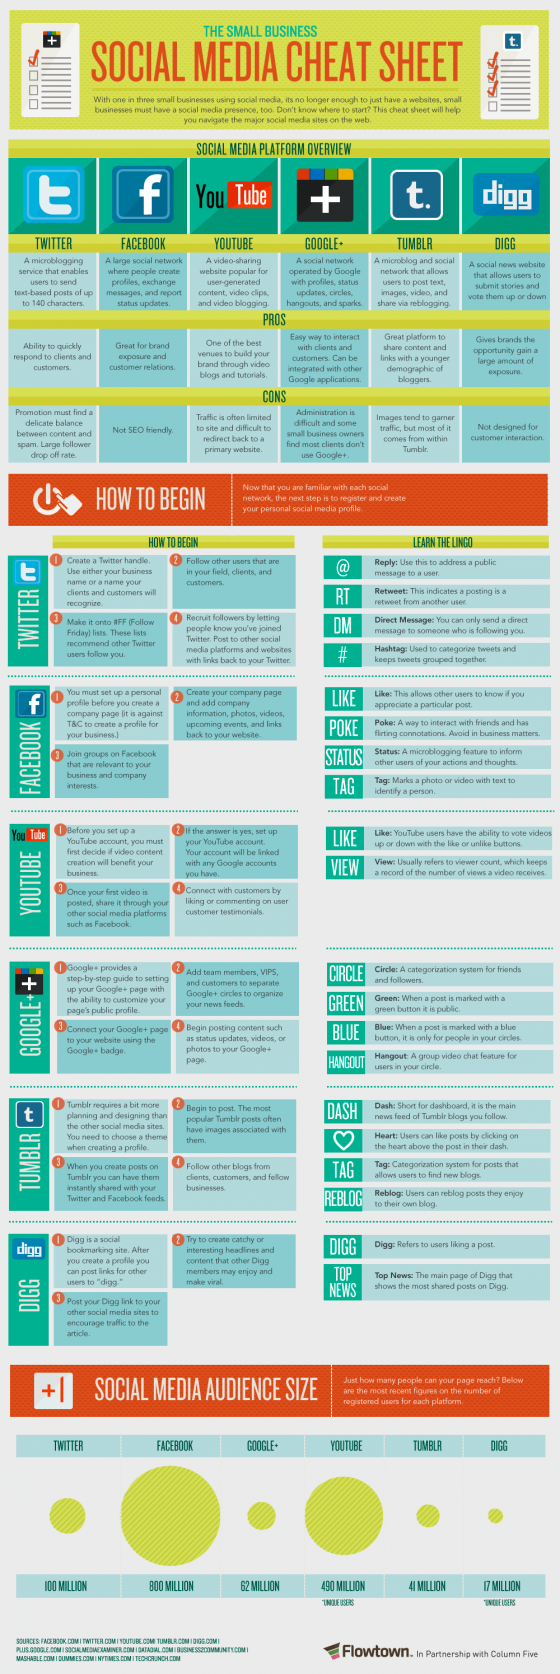 Social-Media-cheat-sheet1-560x1674